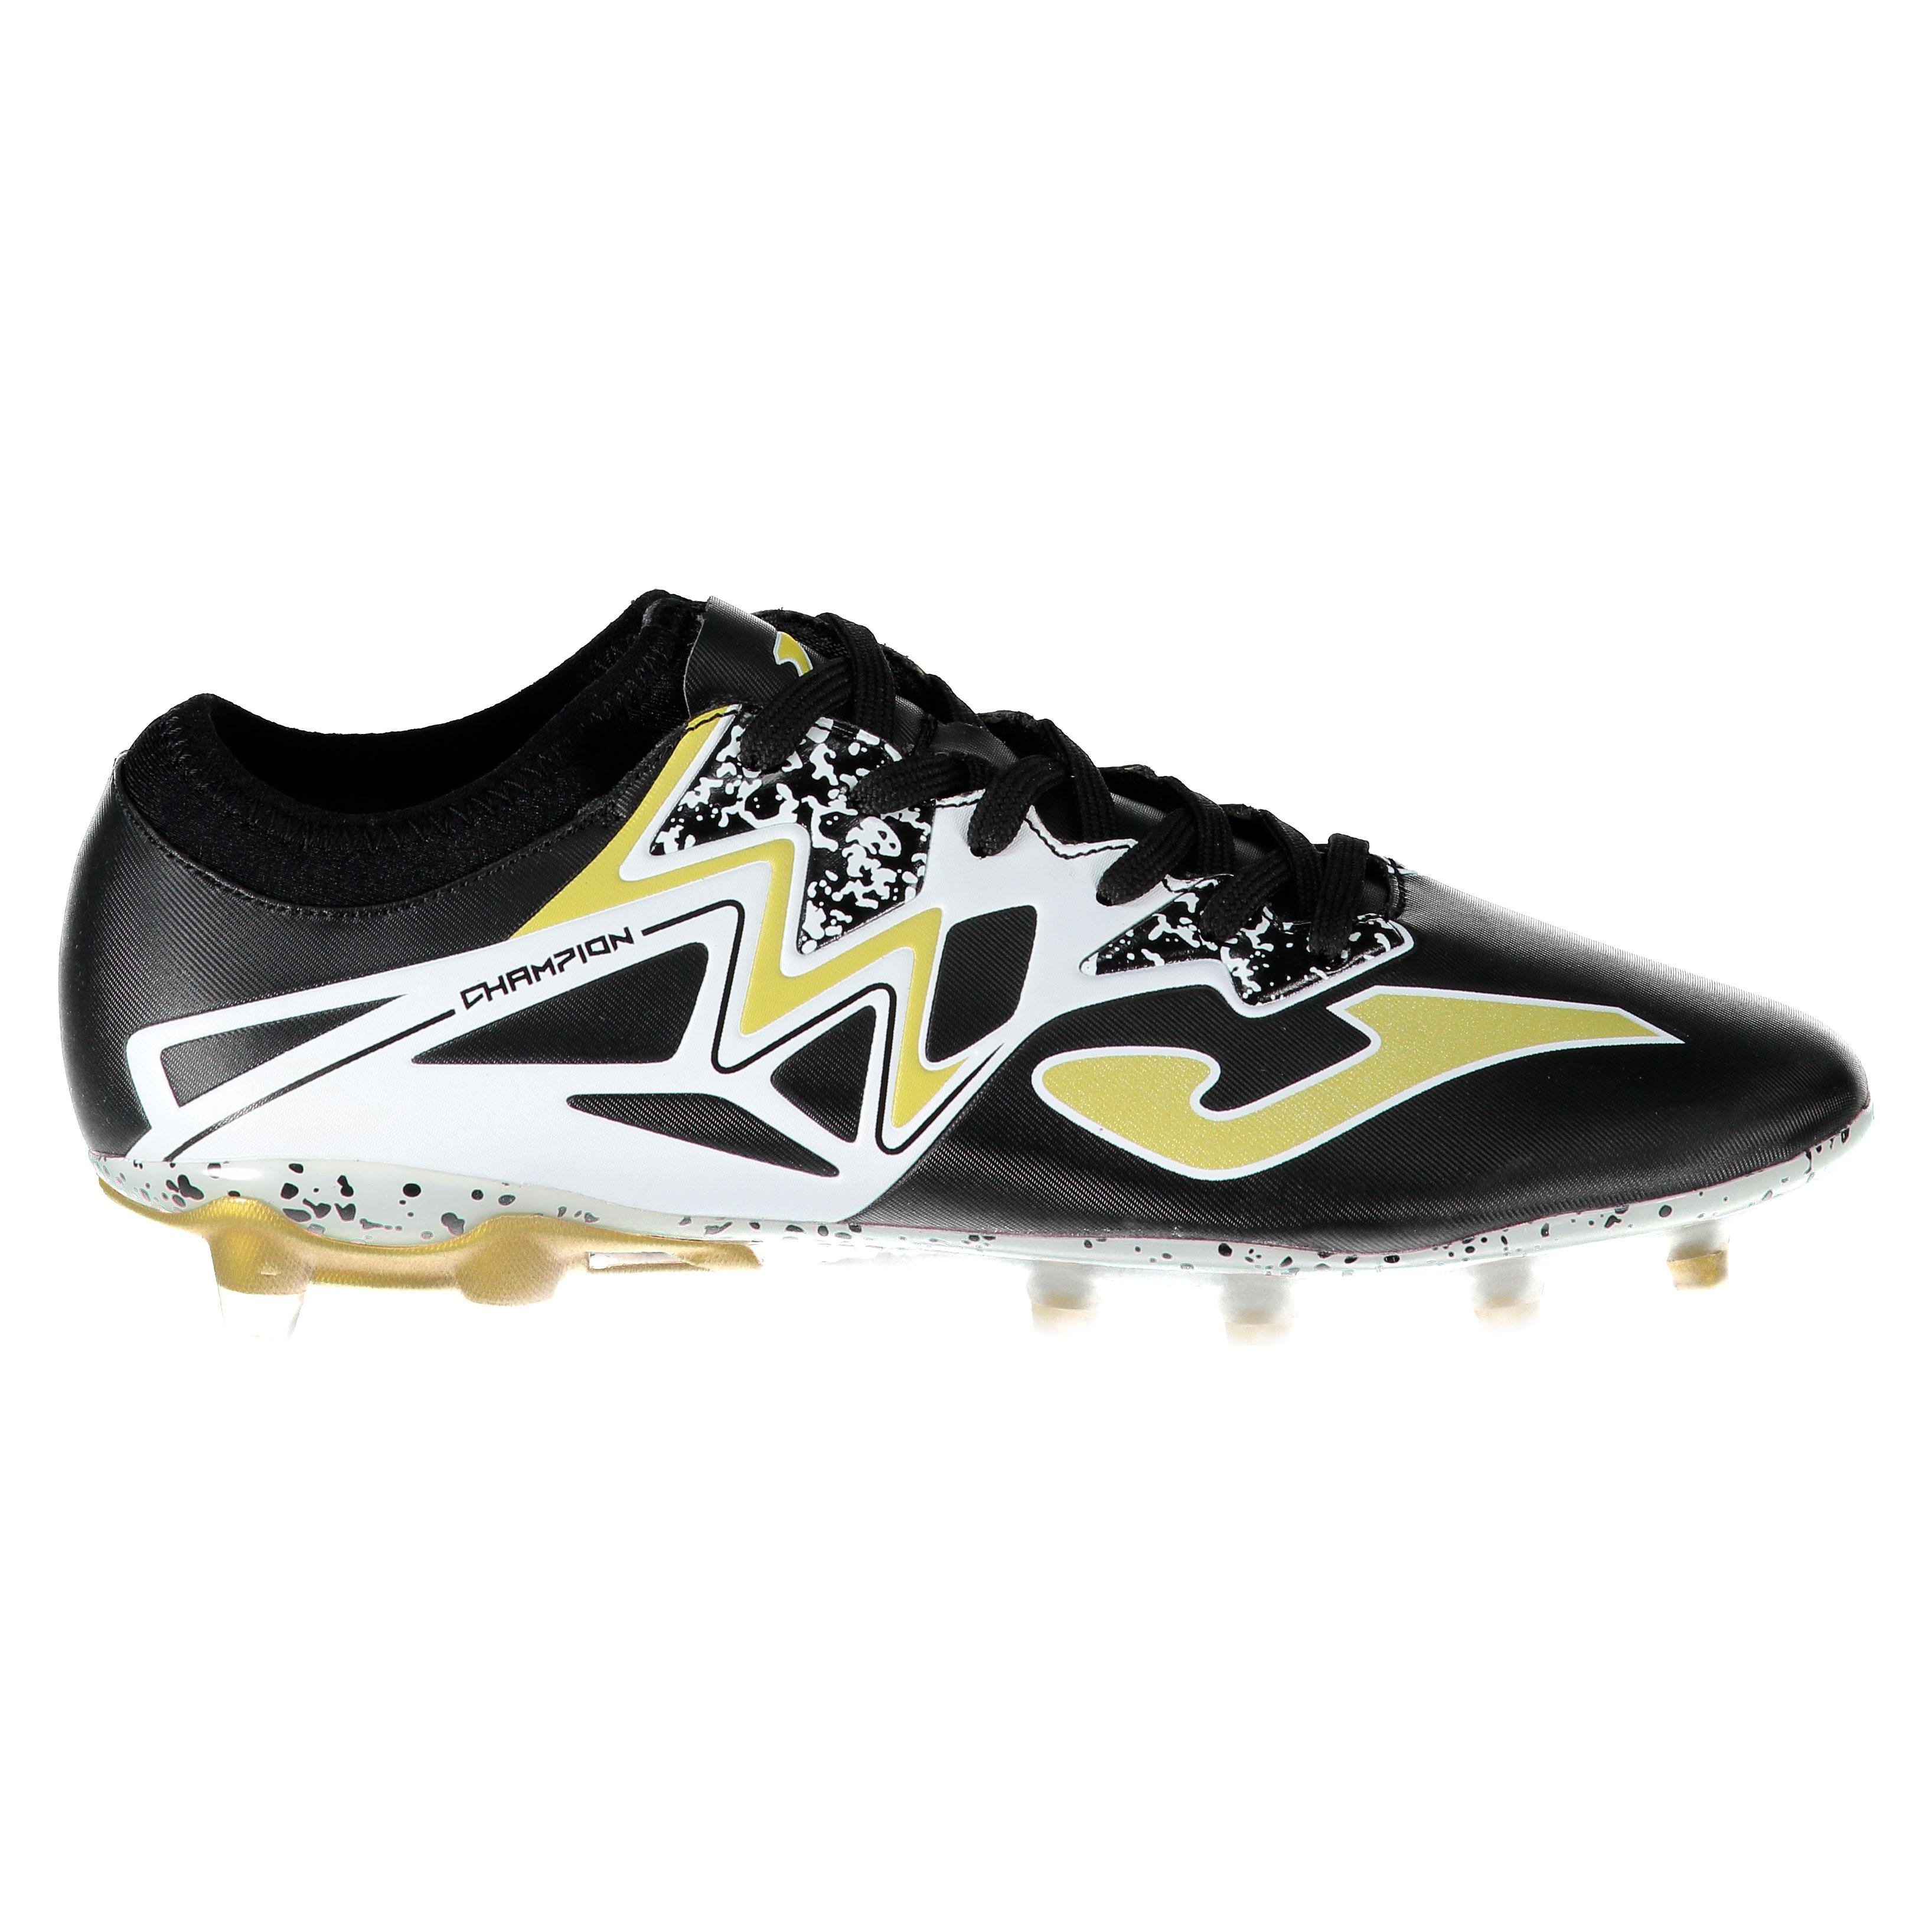 Joma Champion Cup Fg Football Boots EU 41 Black / Gold